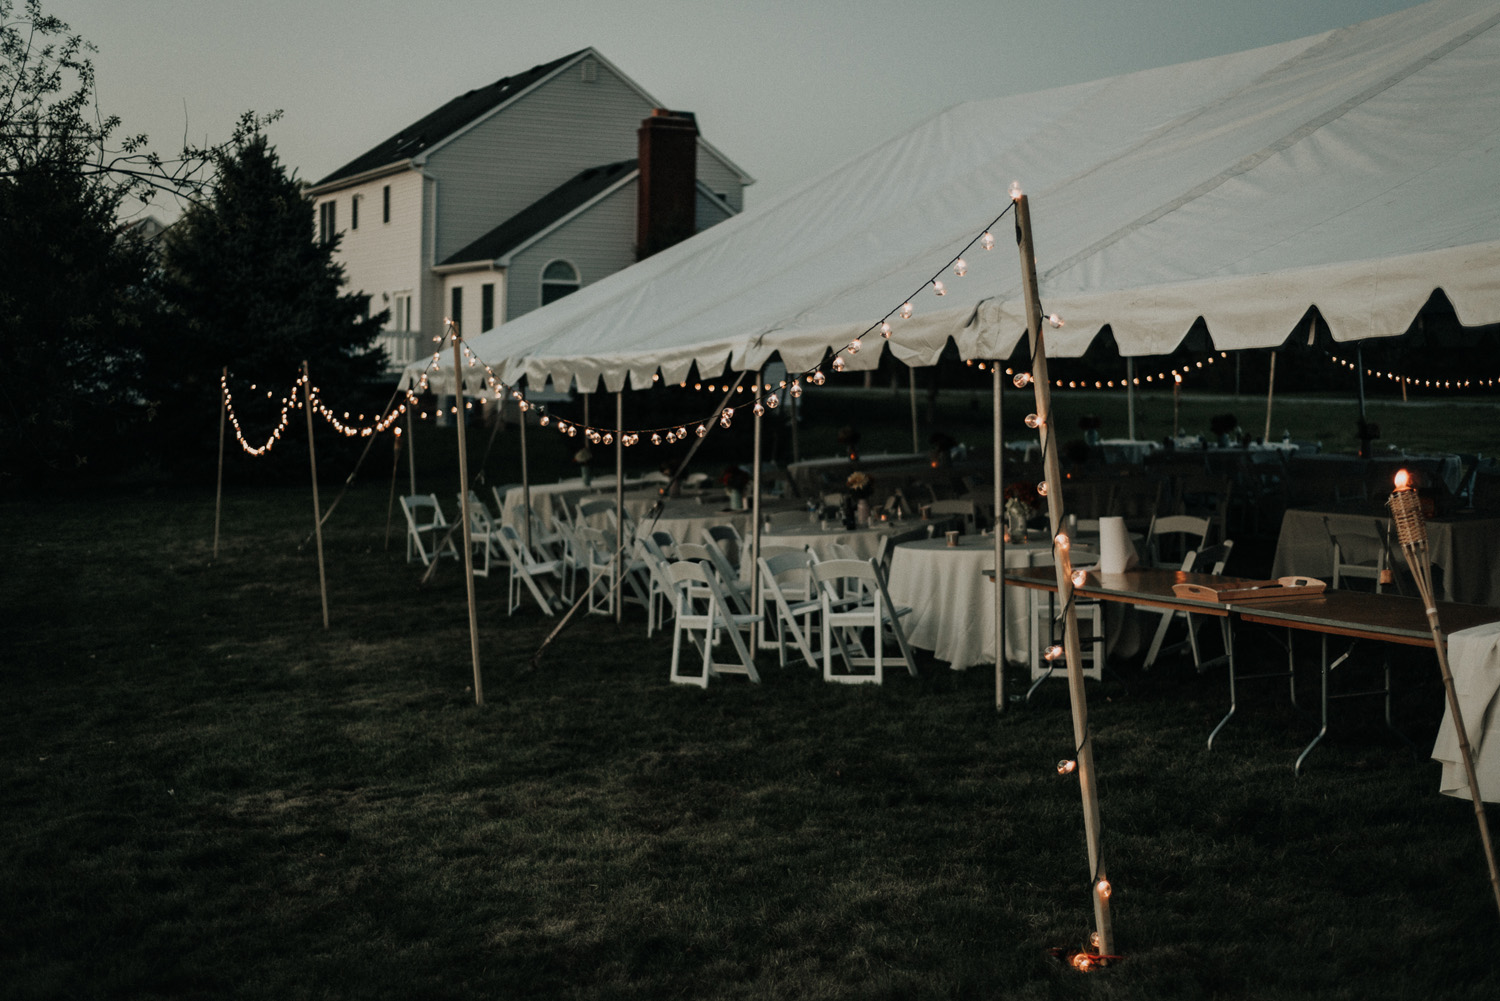 KyleWillisPhoto-Kyle-Willis-Photography-Flemington-New-Jersey-Engagement-Wedding-Egyptian-Party-Backyard-Photos-Ceremony-Philadelphia-Photographer